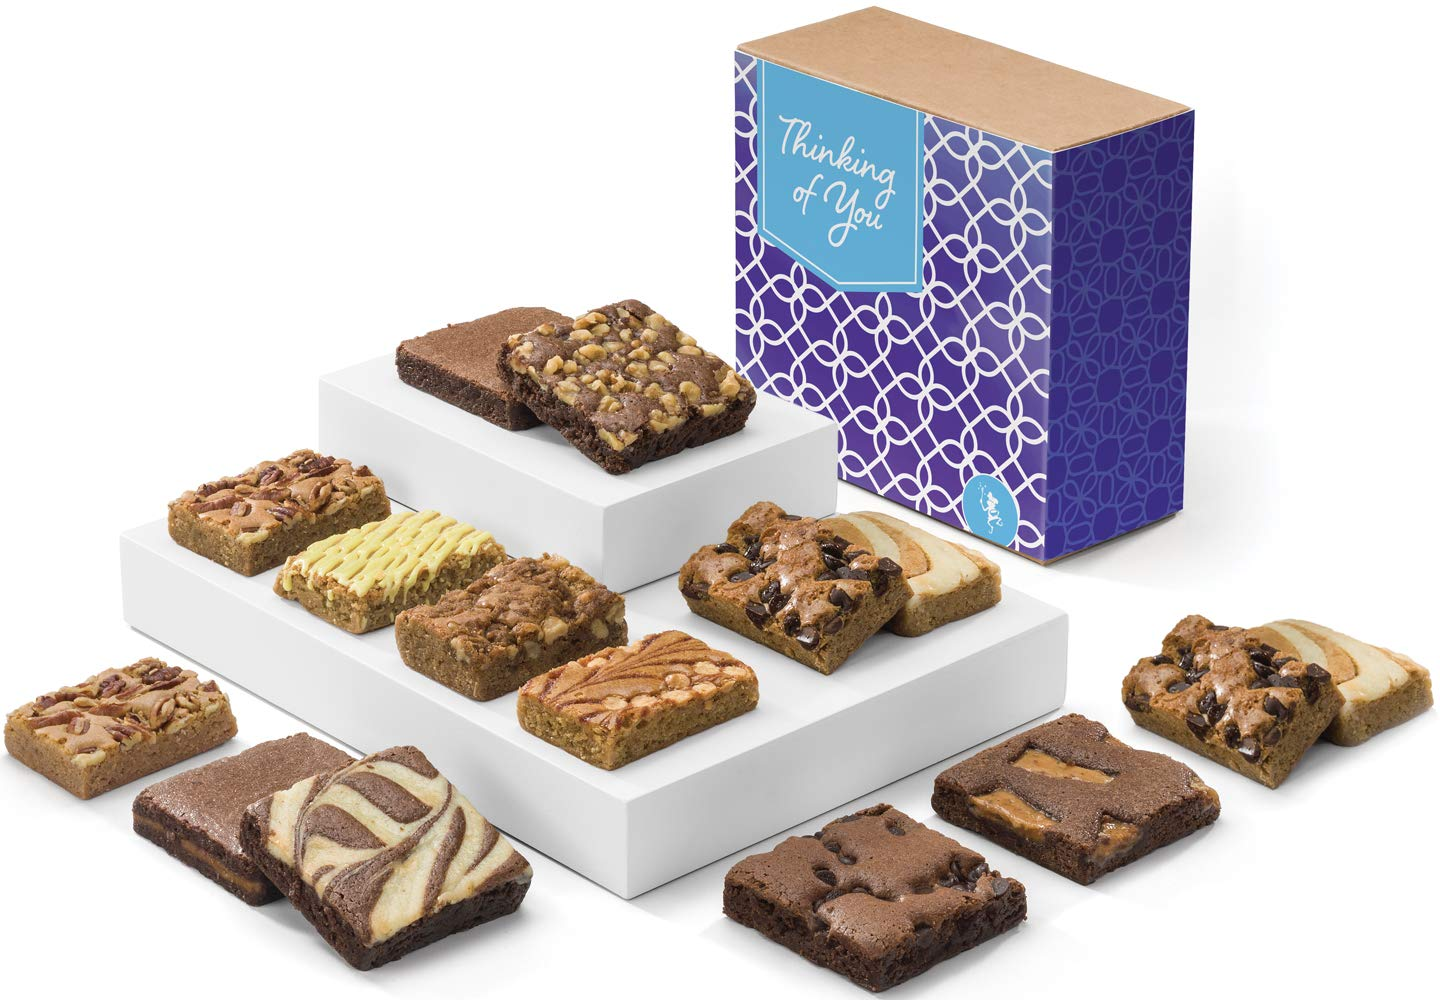 Fairytale Brownies Thinking of You Bar & Brownie Combo Gourmet Chocolate Food Gift Basket - 3 Inch Square Full-Size Brownies and 3 Inch x 2 Inch Blondie Bars - 15 Pieces - Item CT381 by Fairytale Brownies